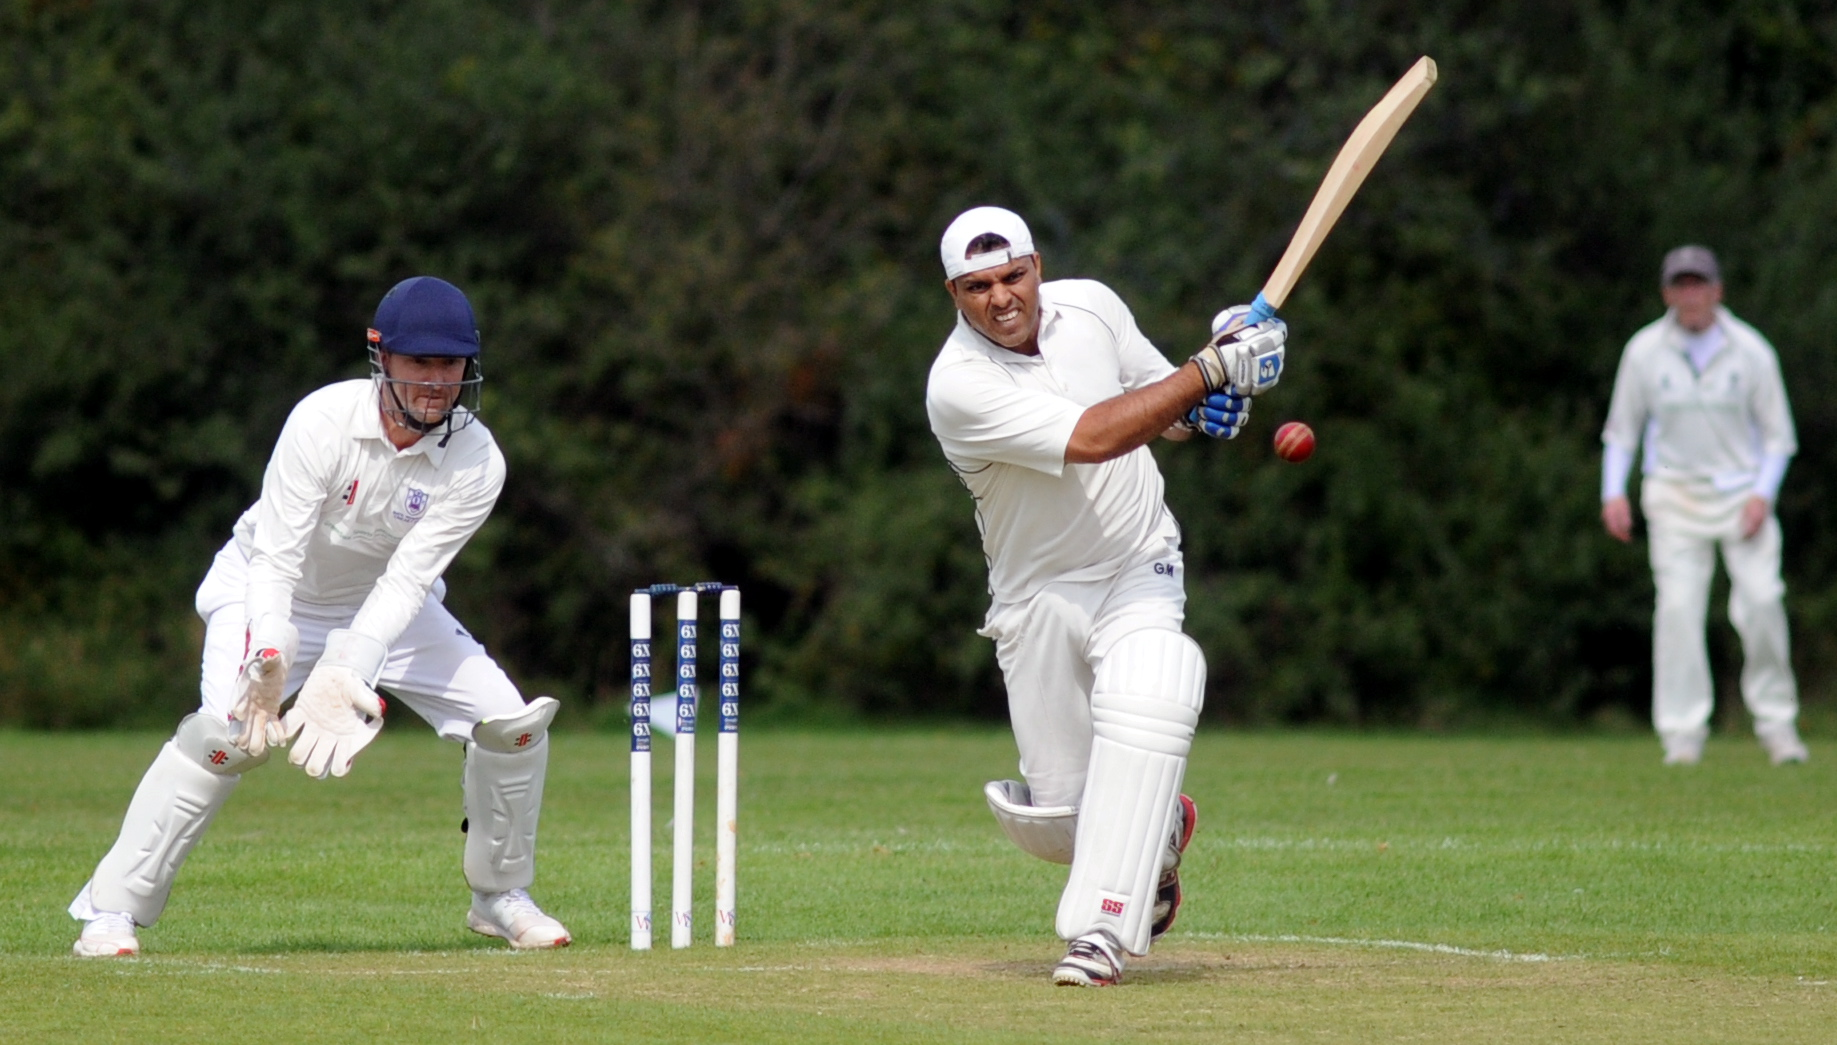 Swindon Nalgo batsman Prashant Joshi goes on the attack against Bath Hospitals in their Division Two clash